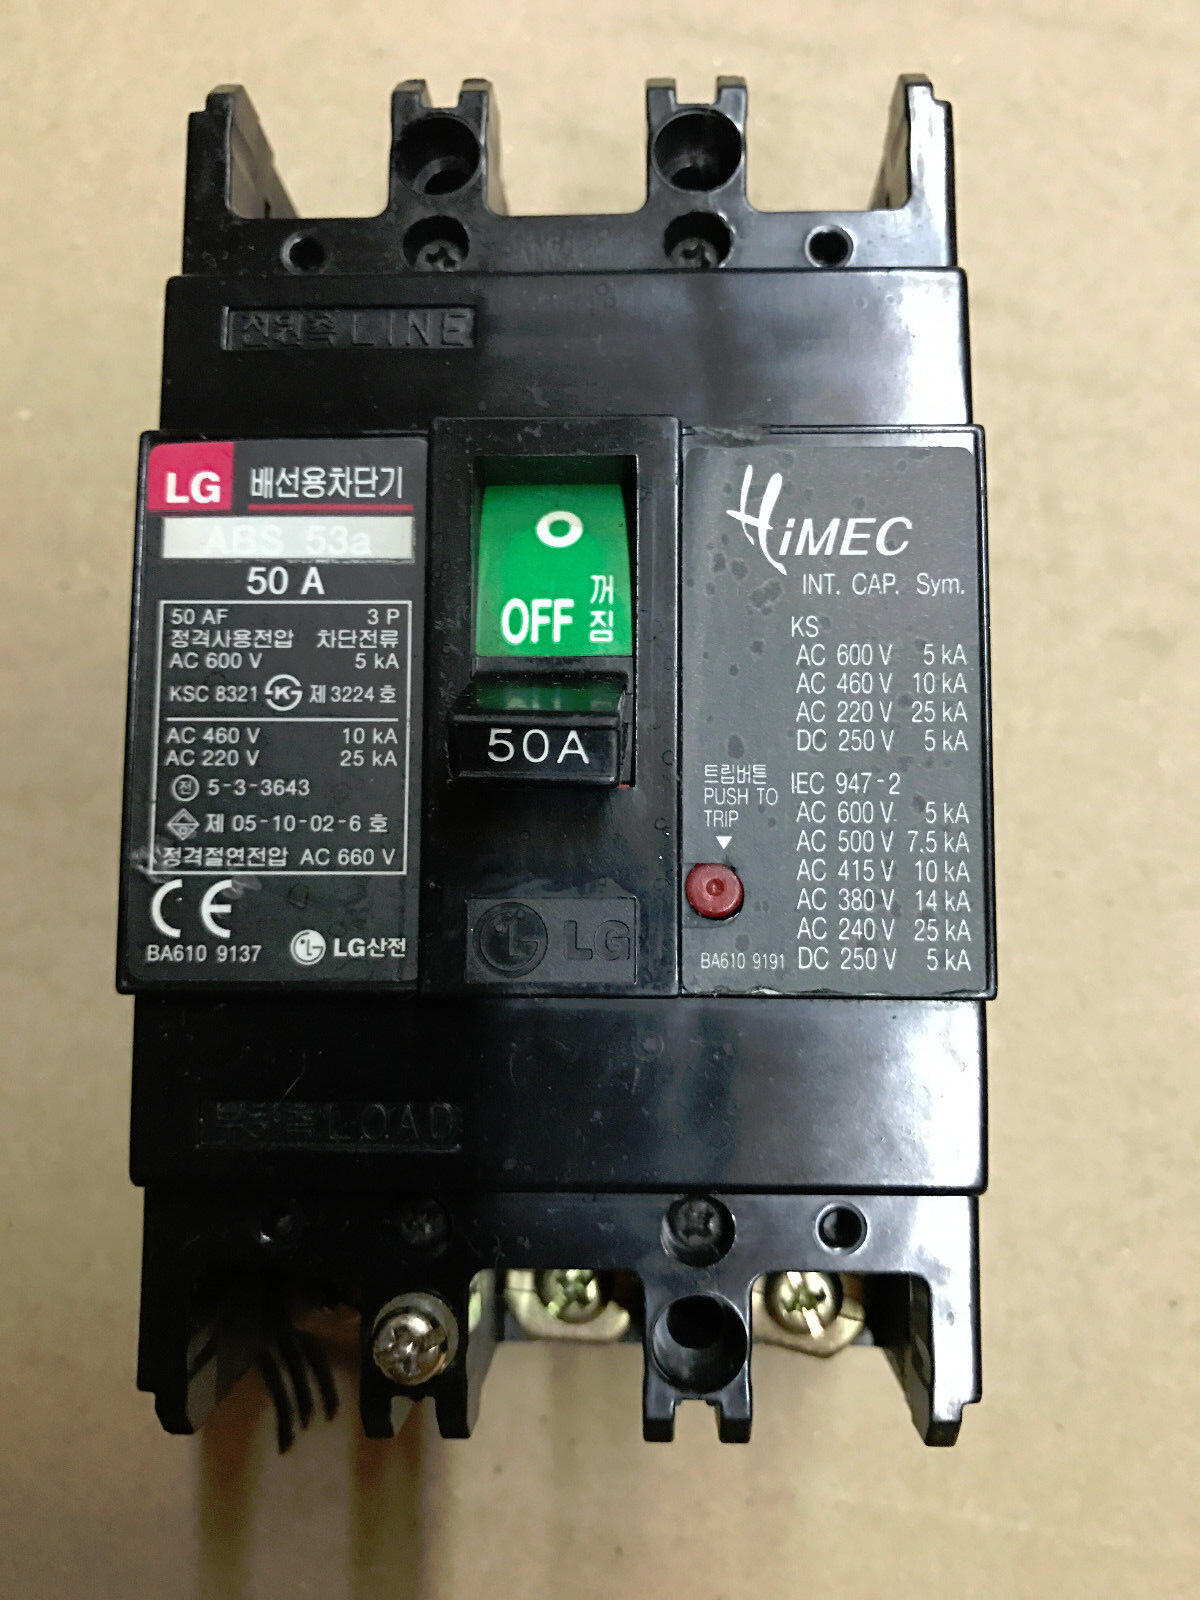 Lg Abs 53a Circuit Breaker 50 Amp 3 Pole 660 Vac 50af With Why My Ac Trips The When I Switch It On Sunrise Stock Photo